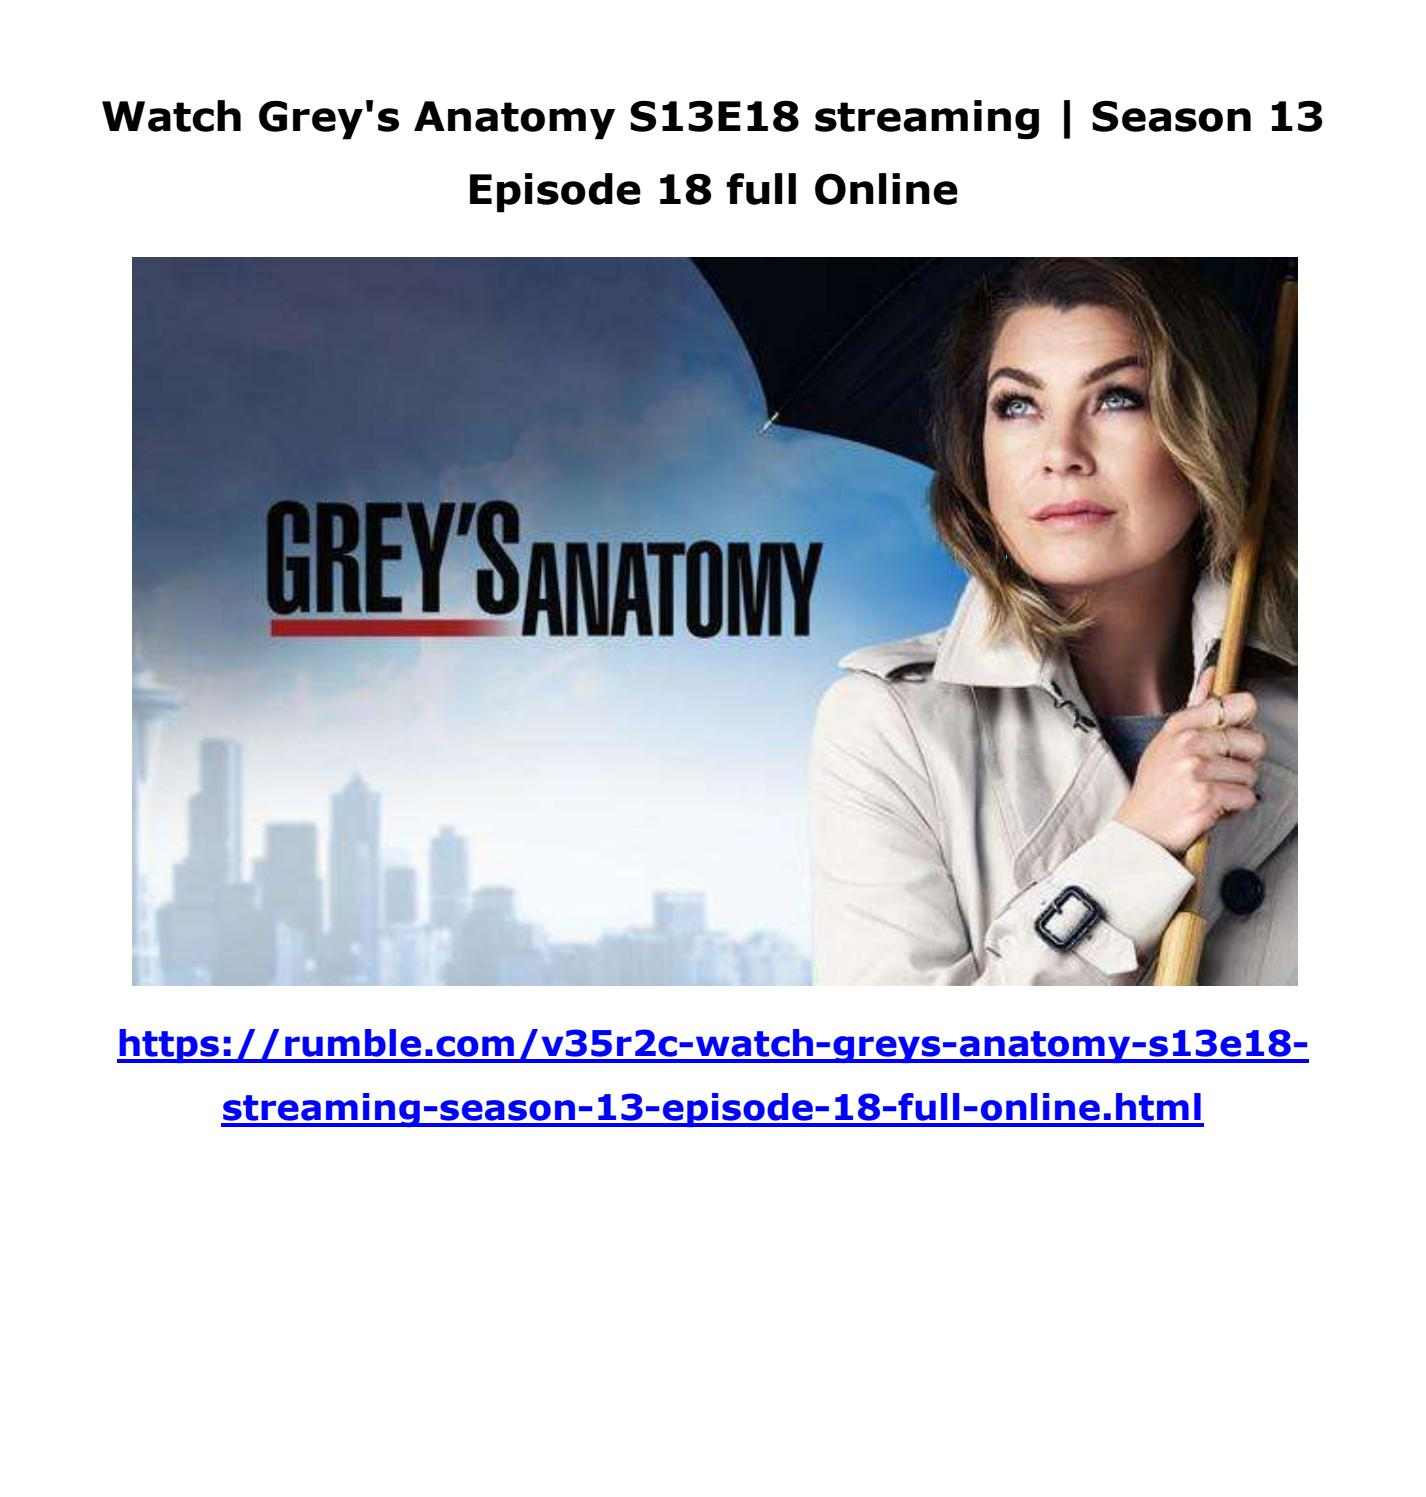 Watch Greys Anatomy S13e18 Streaming Season 13 Episode 18 Full